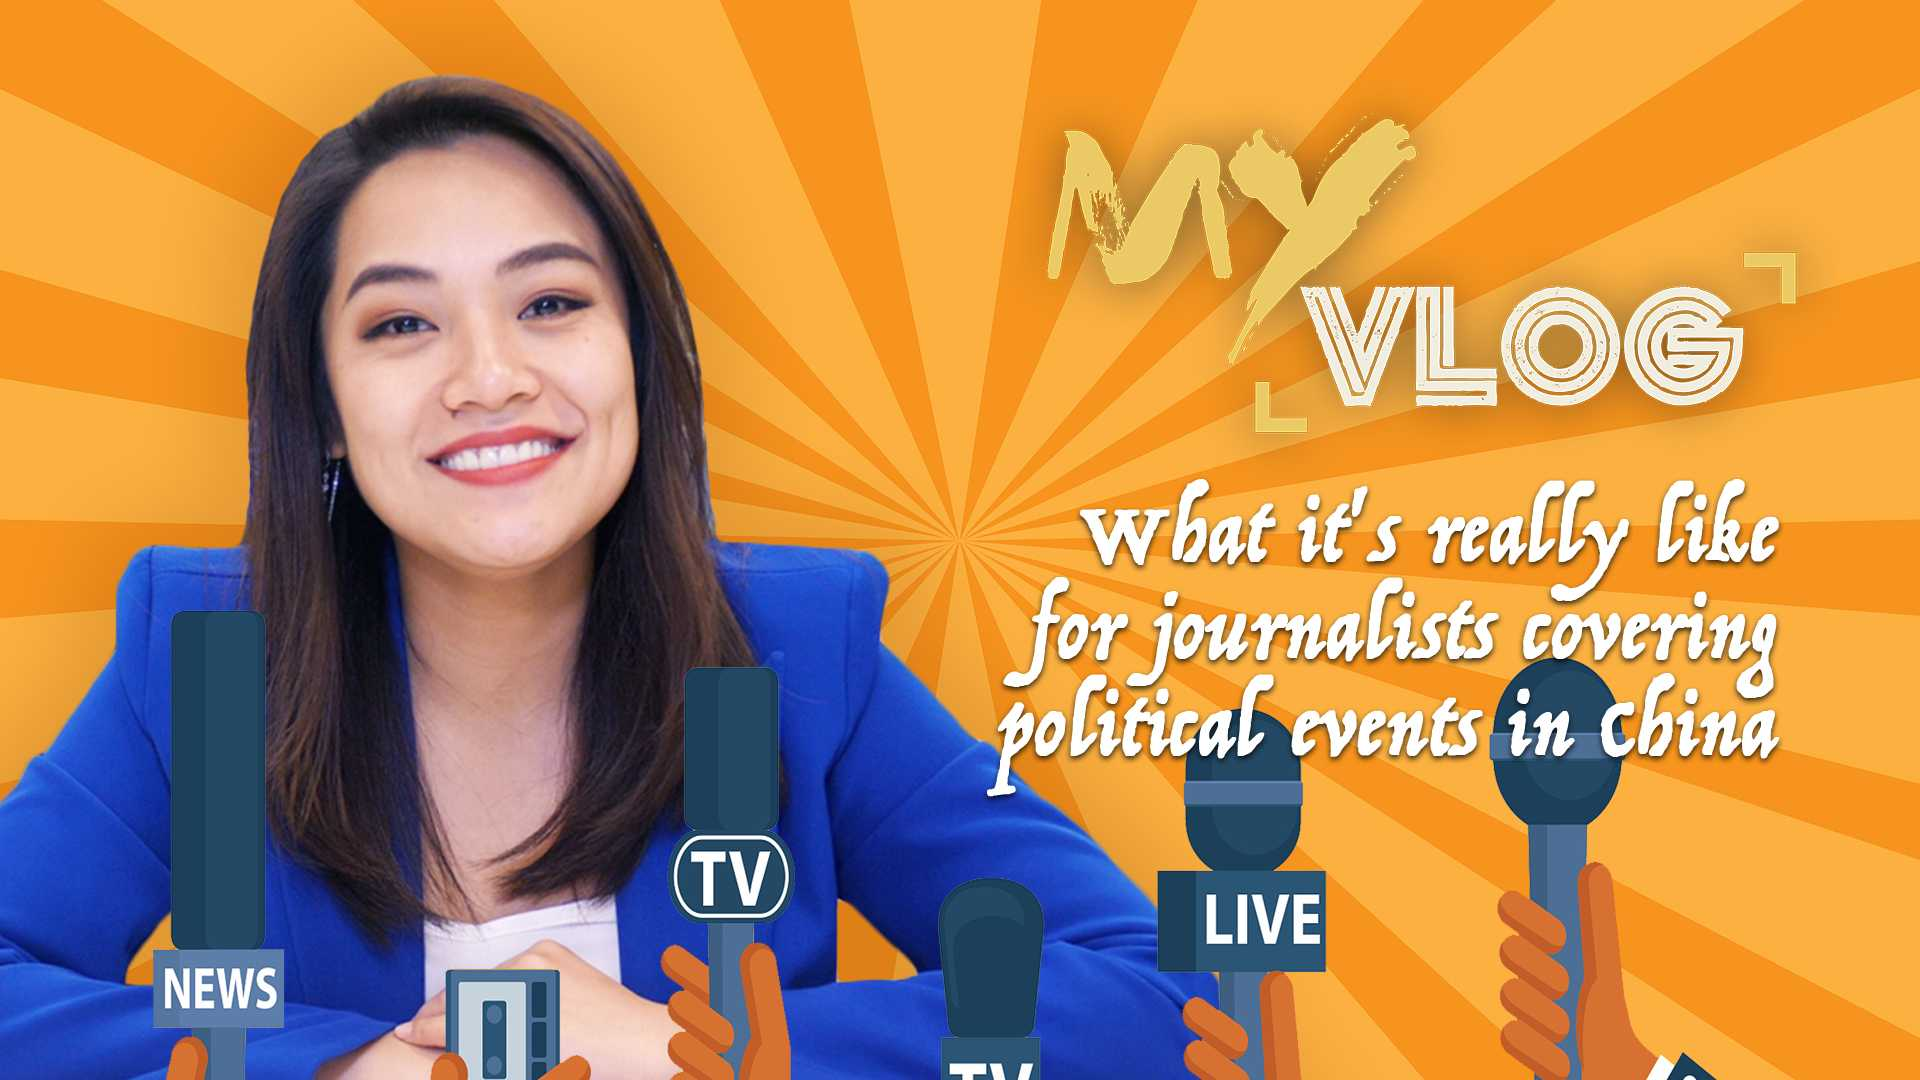 My Vlog: The secret behind covering big political events as